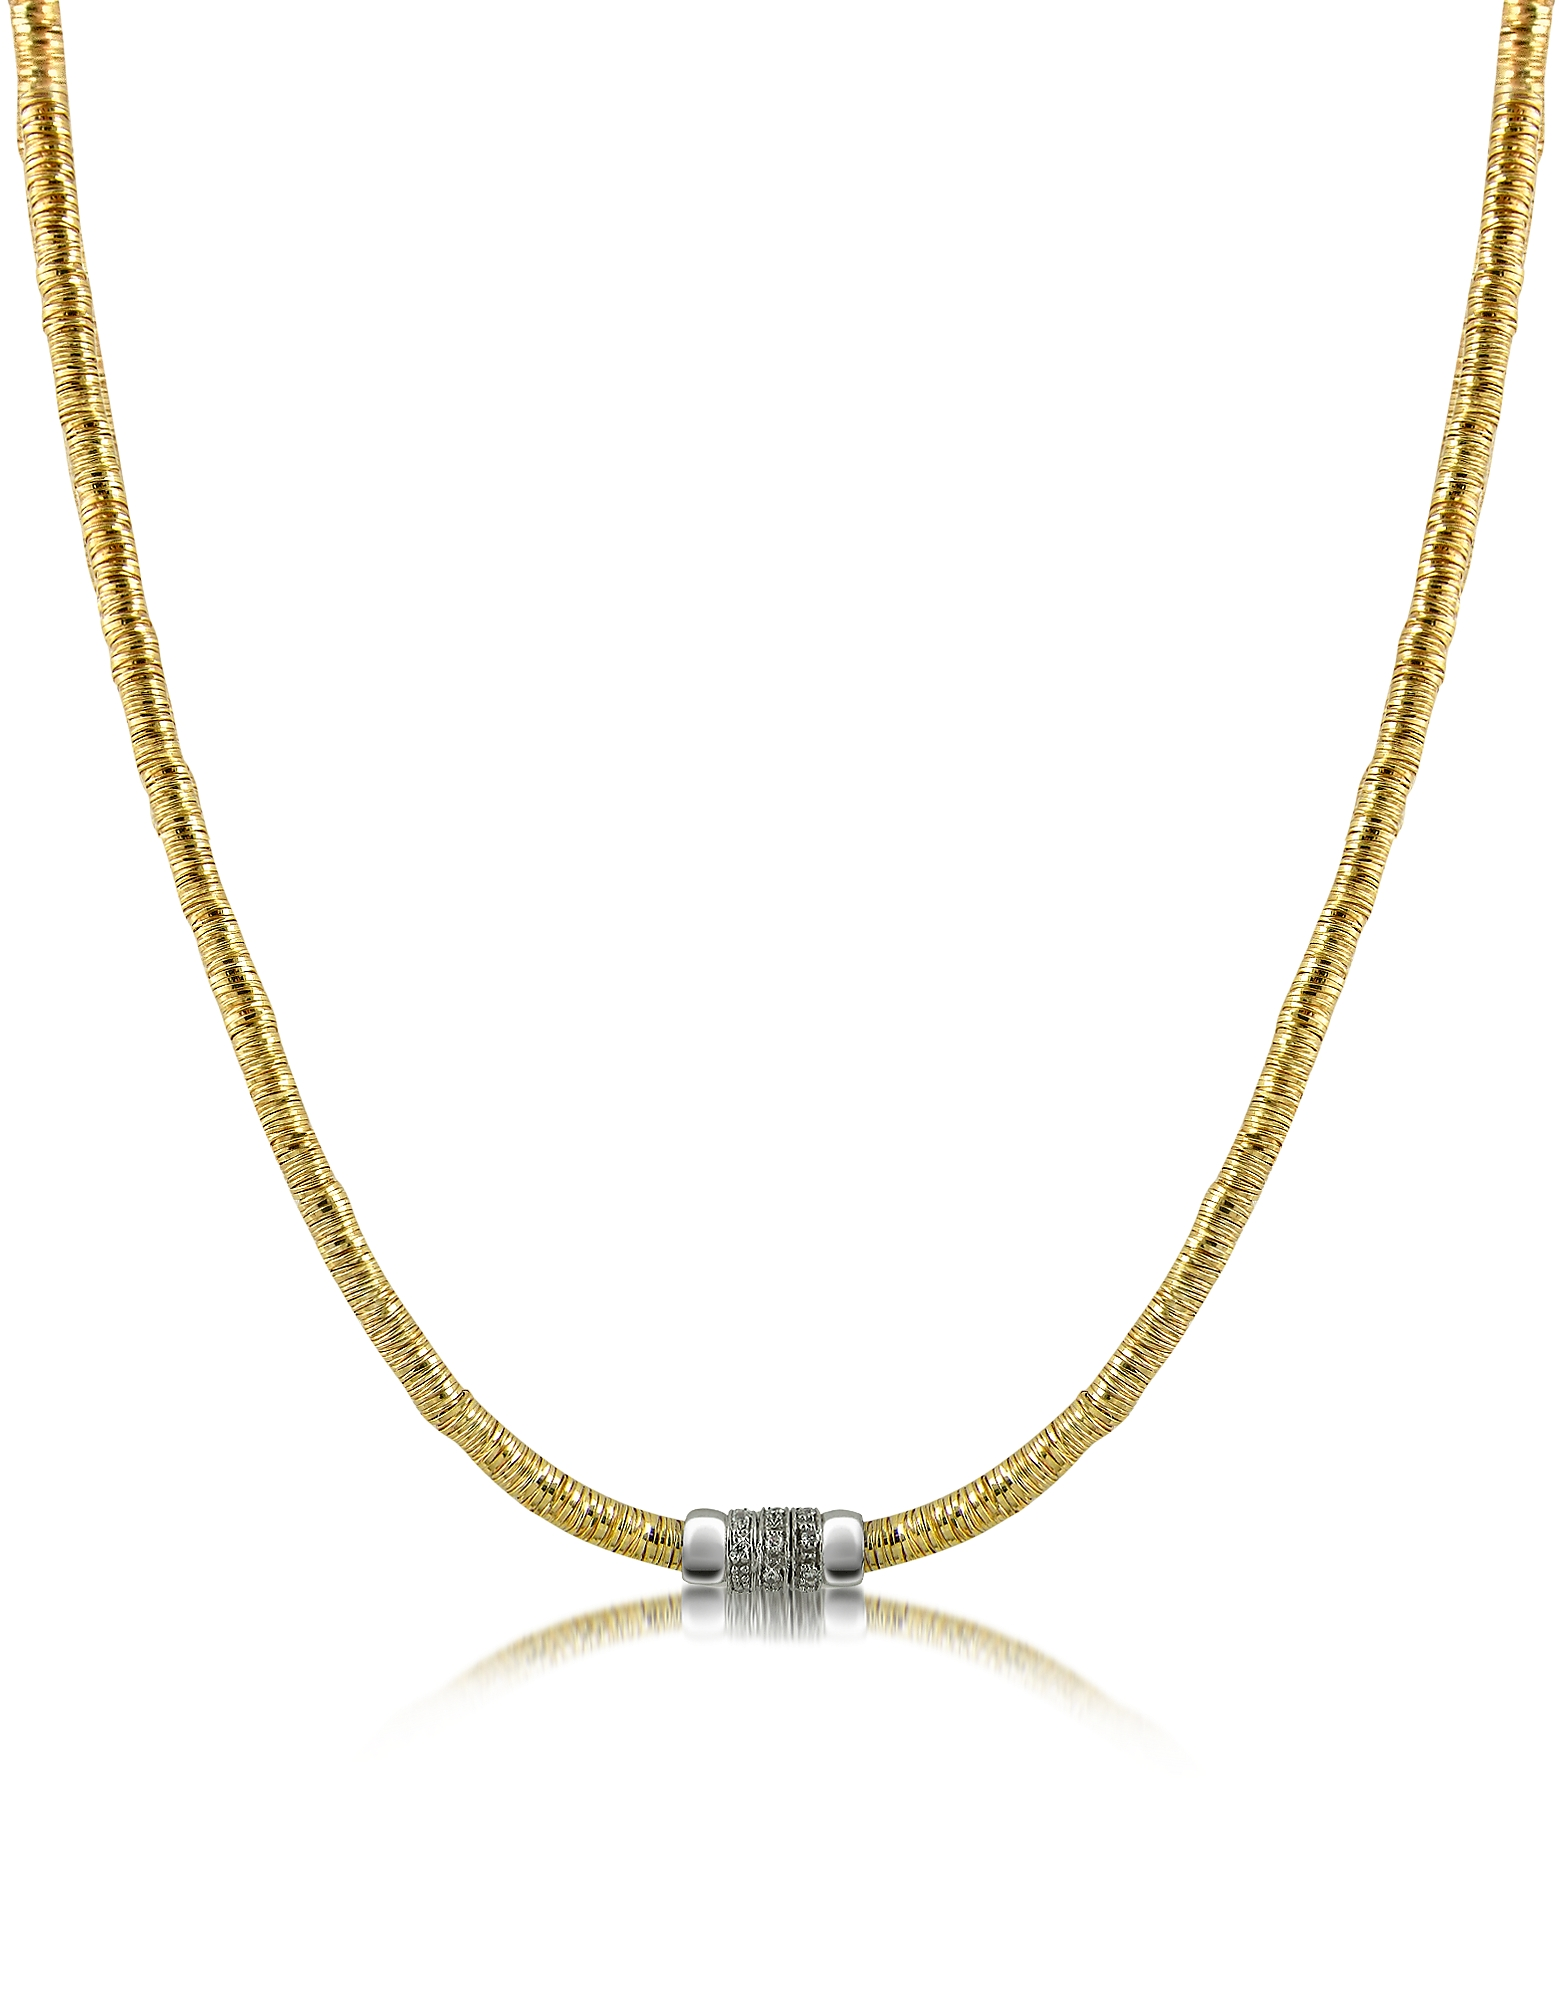 Orlando Orlandini Necklaces, Capriccio - Diamond 18K Gold Chain Snake Necklace